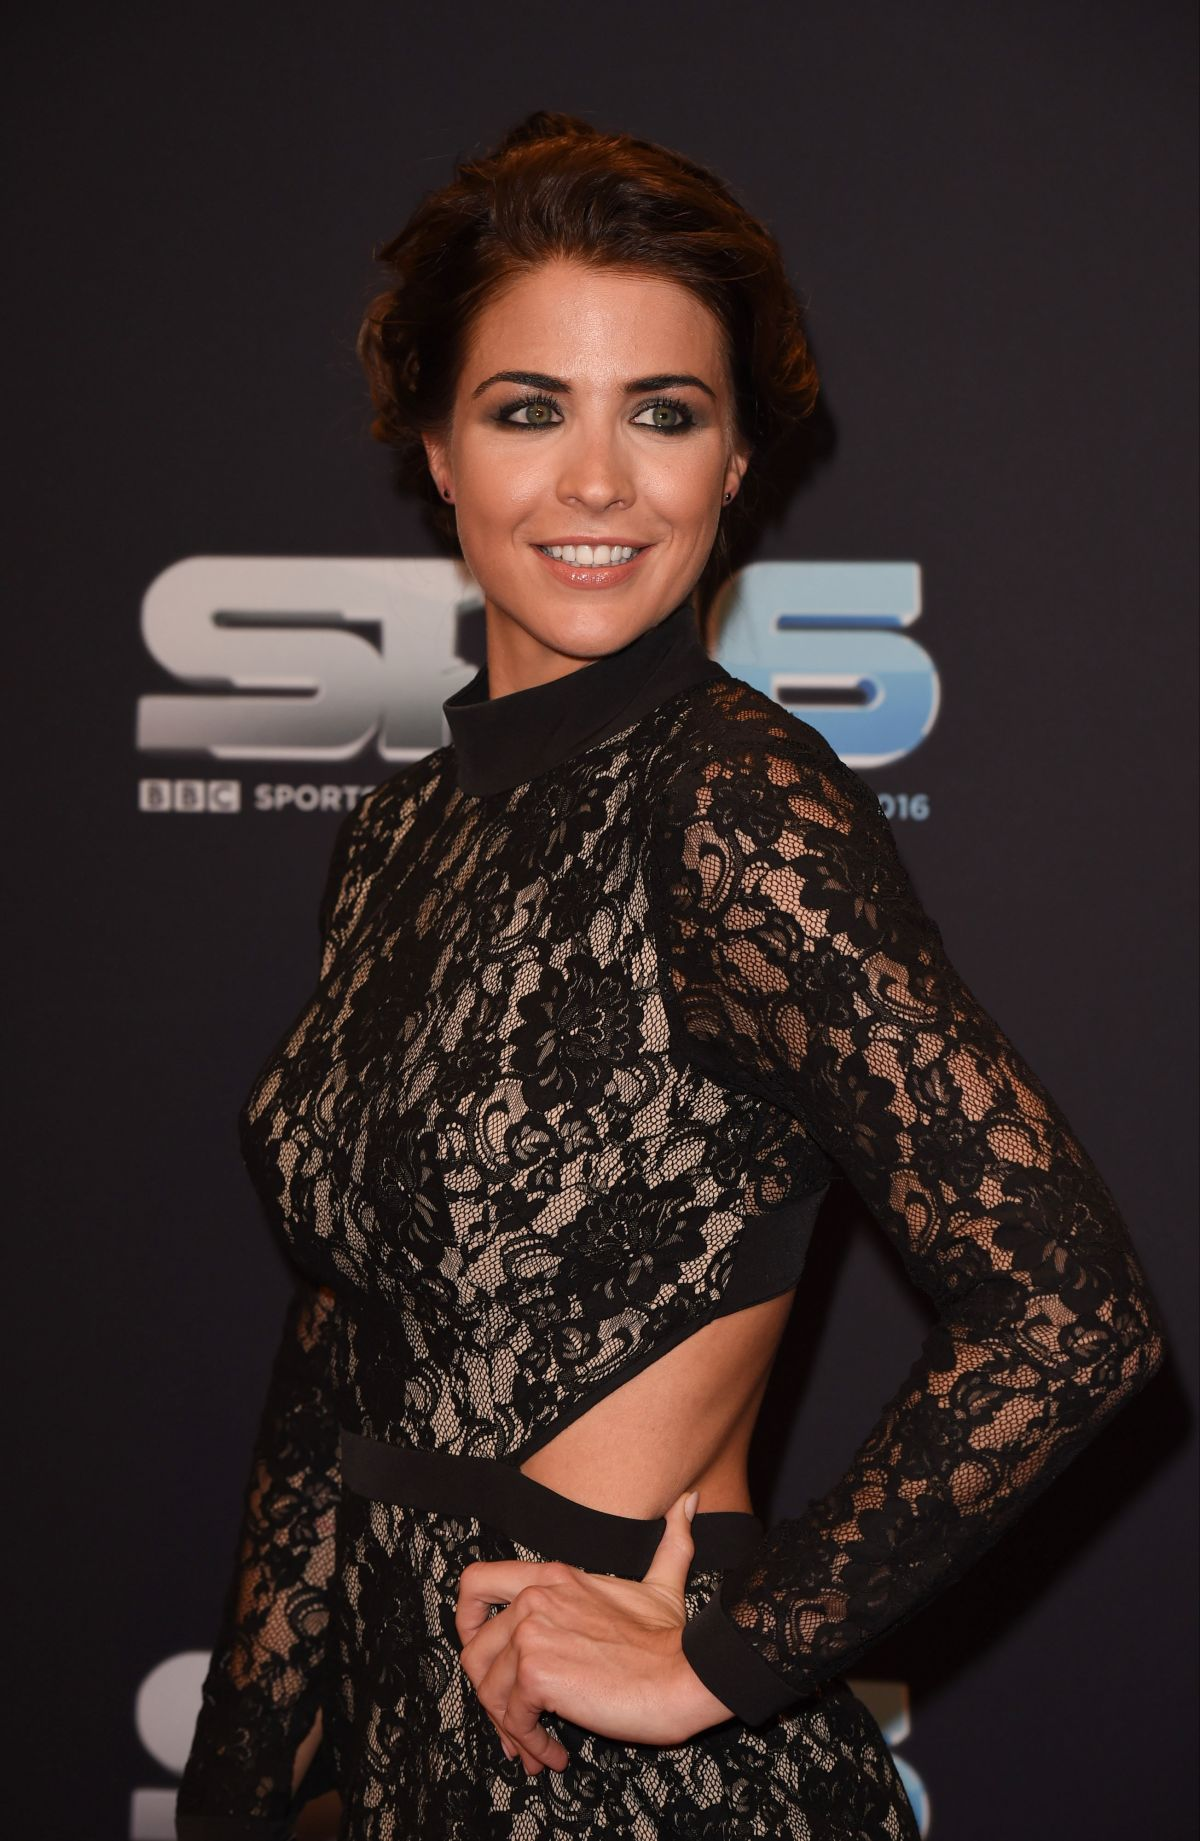 GEMMA ATKINSON at BBC Sports Personality of the Year in Birmingham 12/18/2016